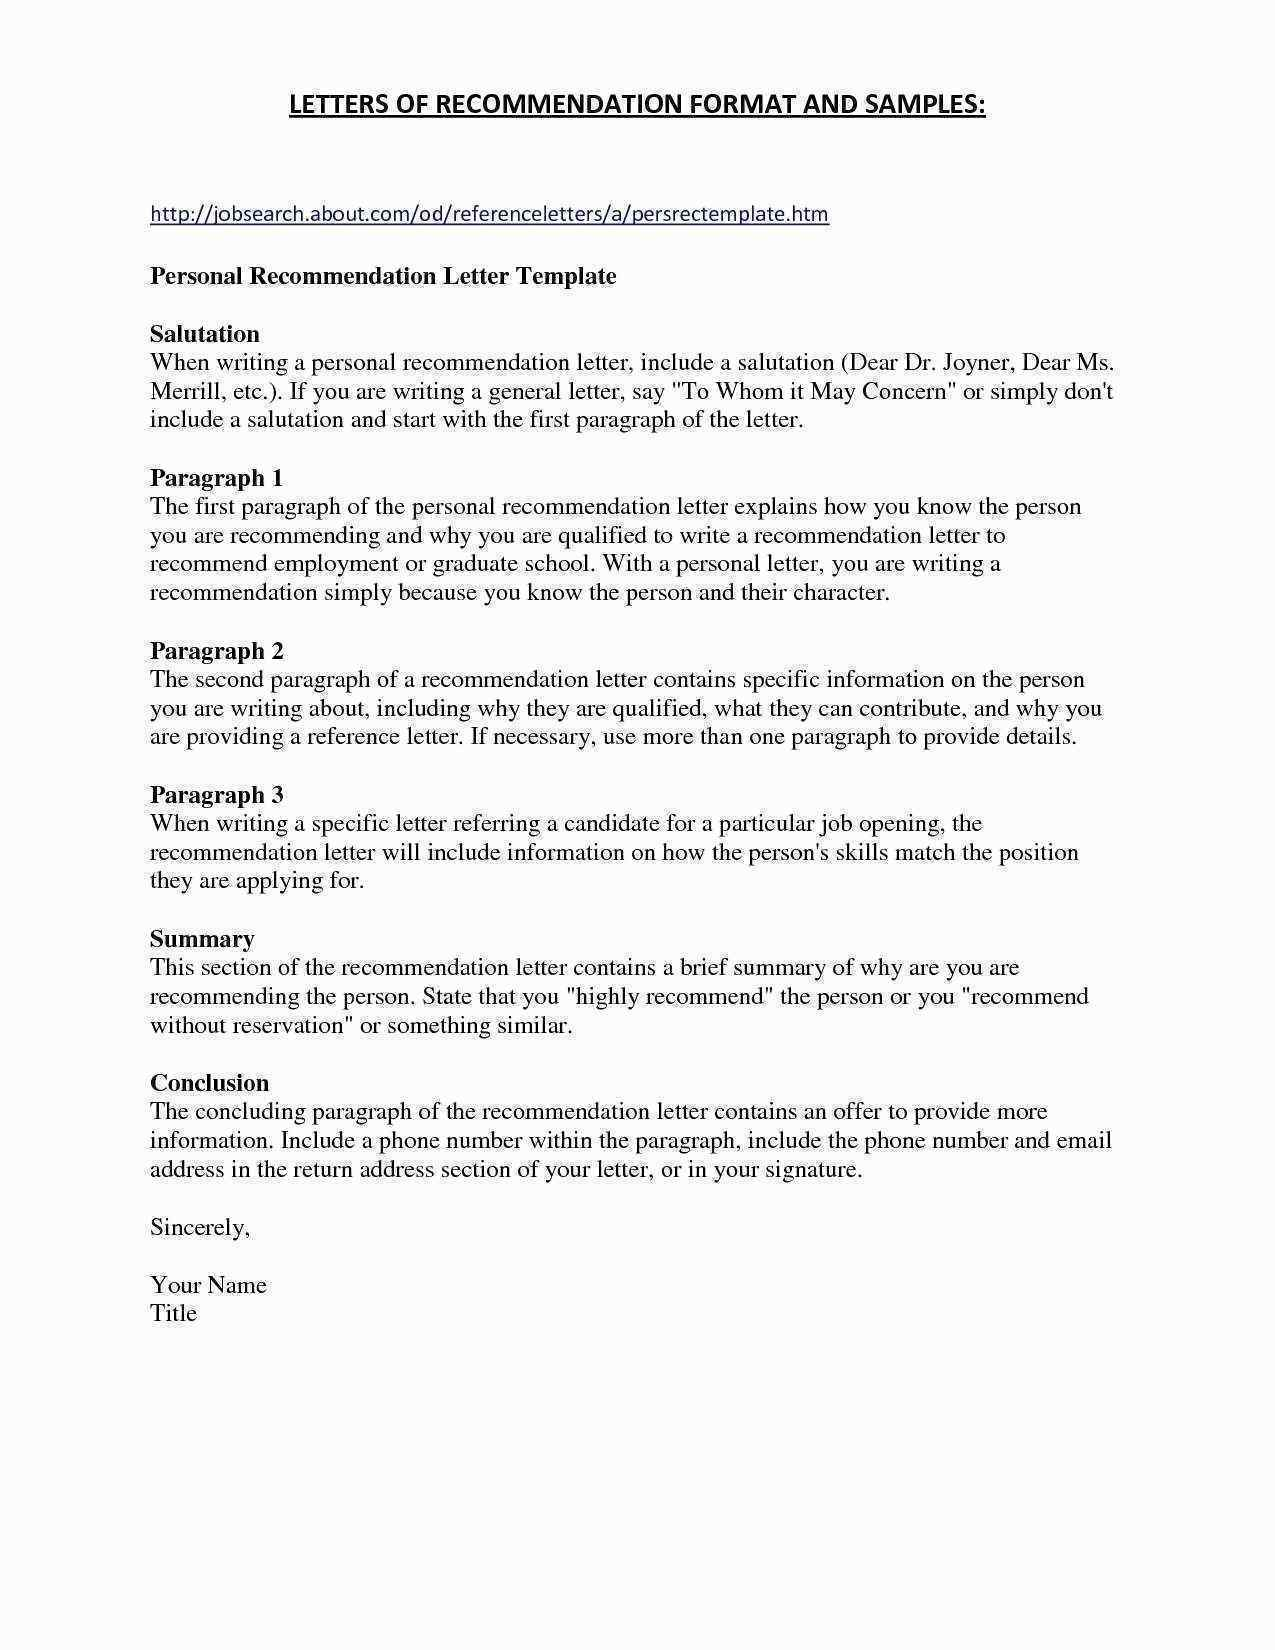 sample reference letter template example-16 Lovely Employment Re mendation Letter 7-d